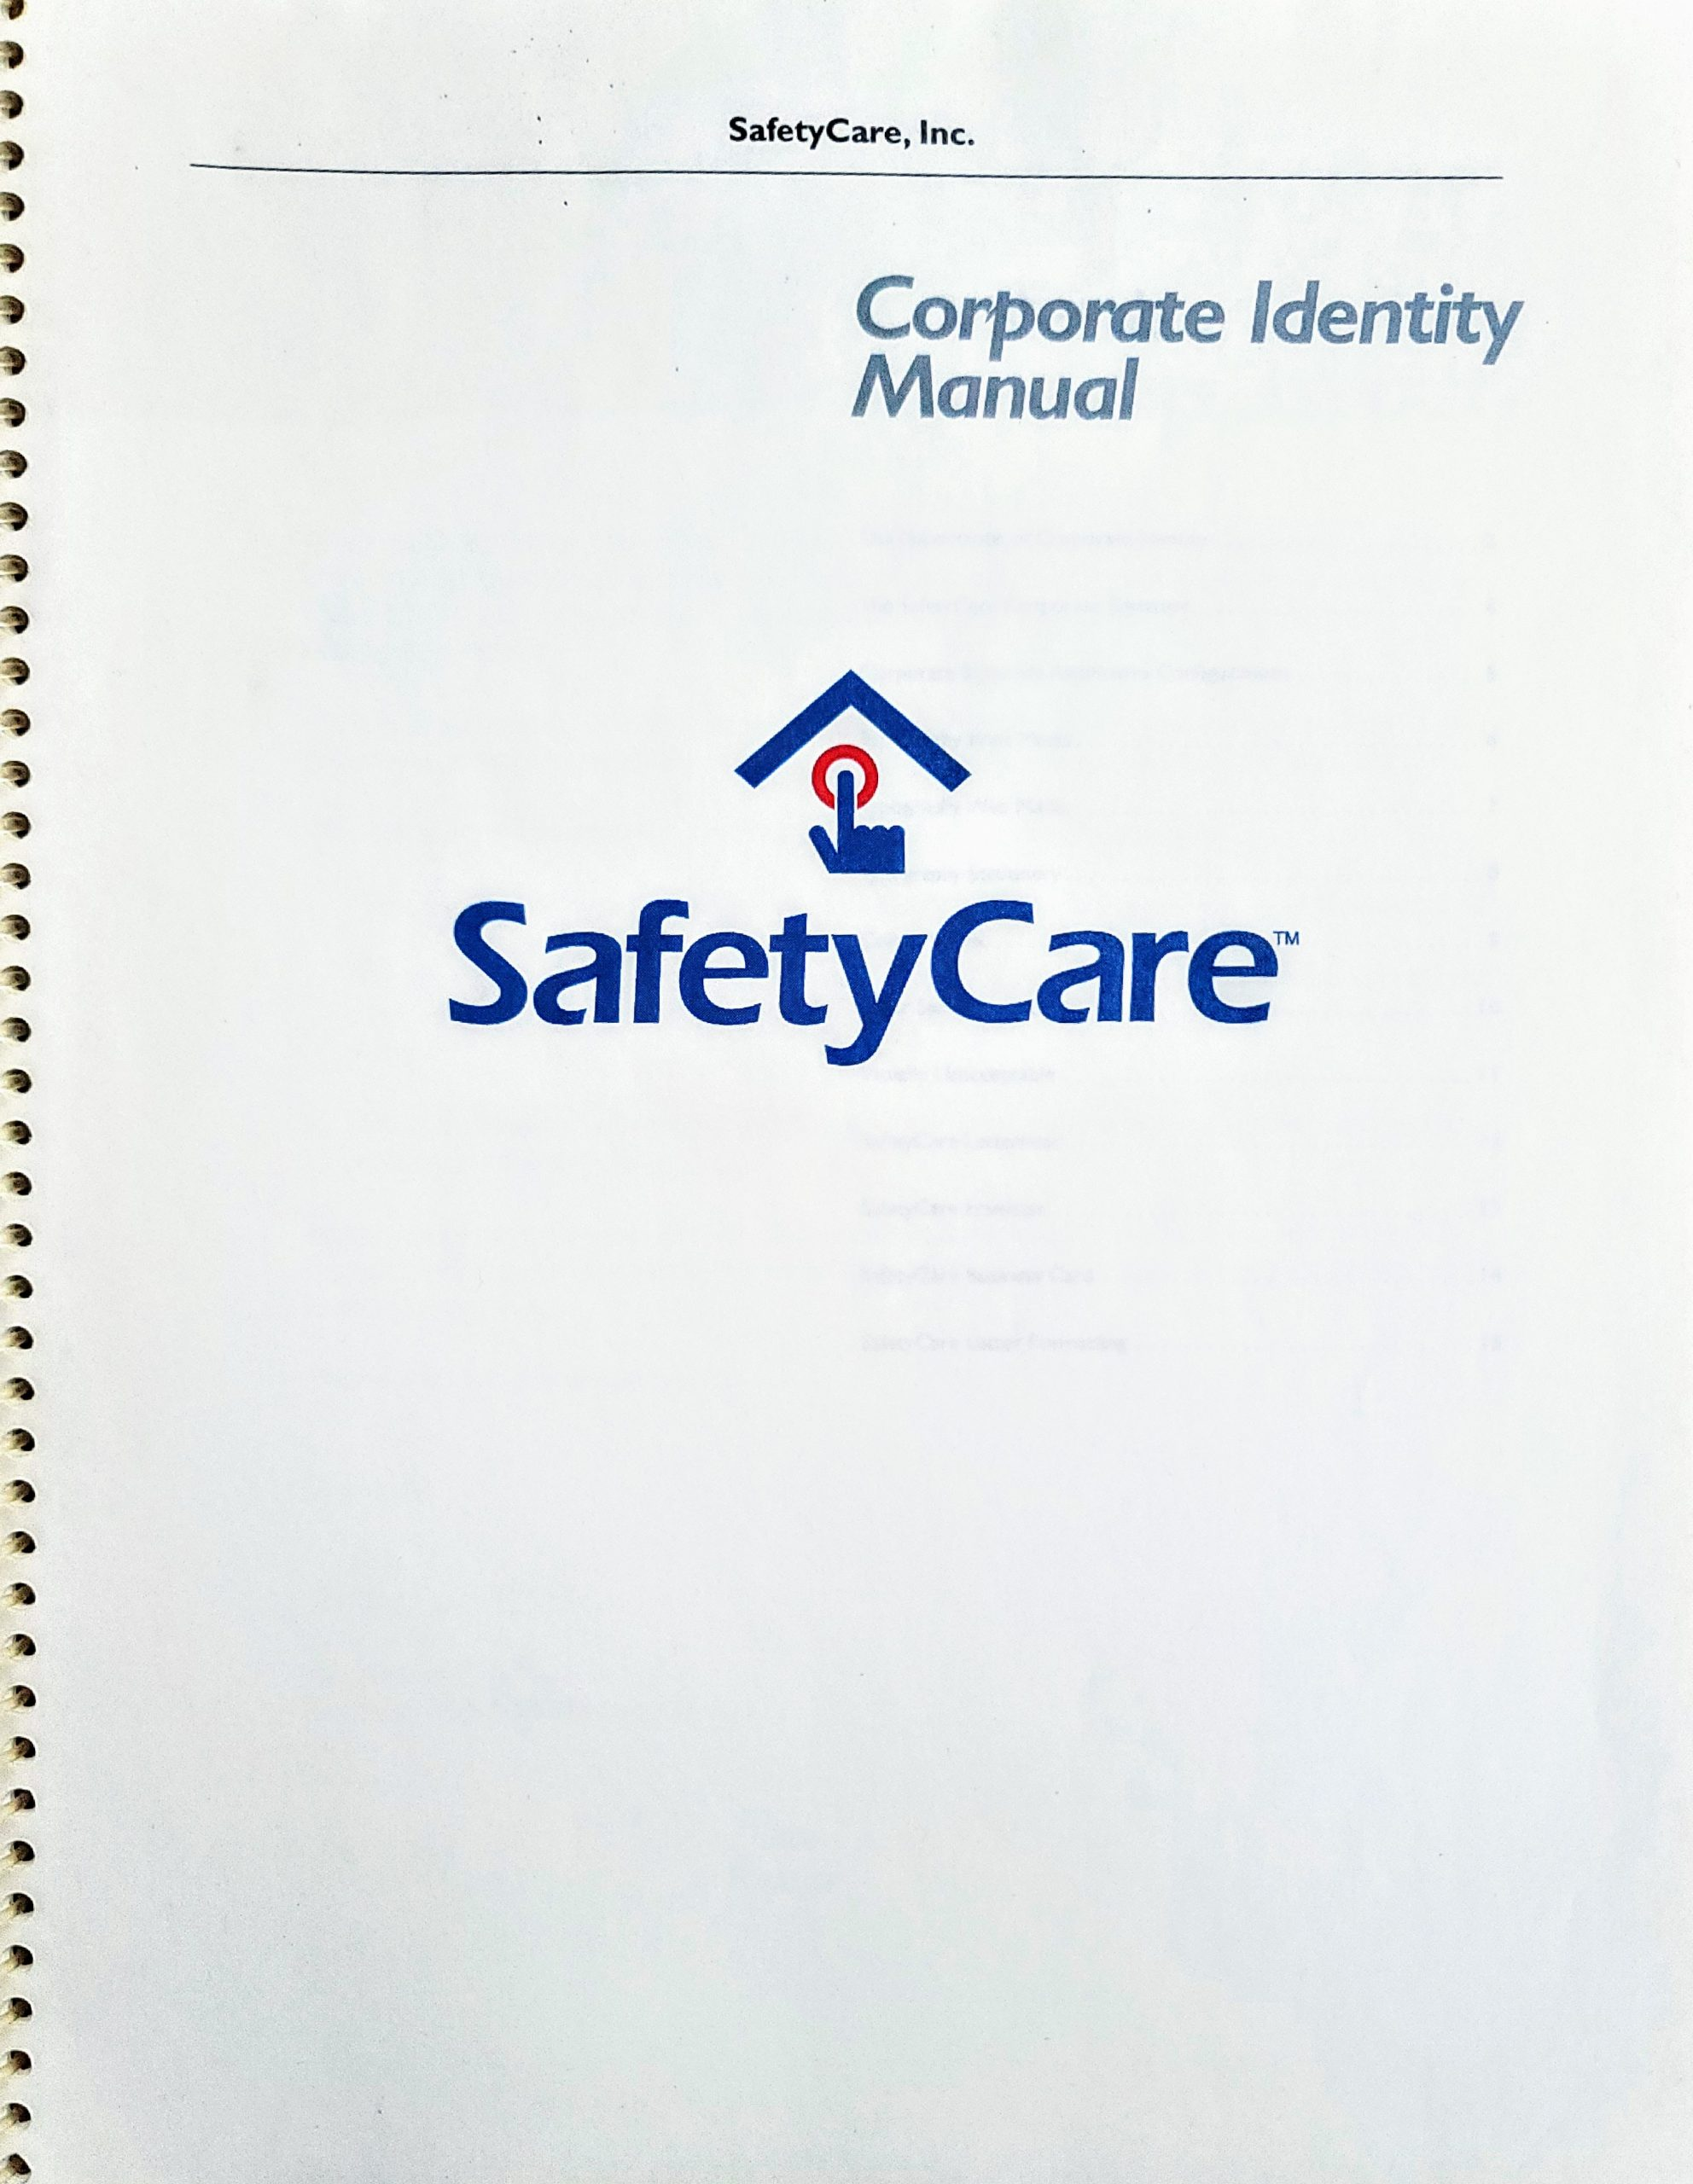 safetycare_corp id_2